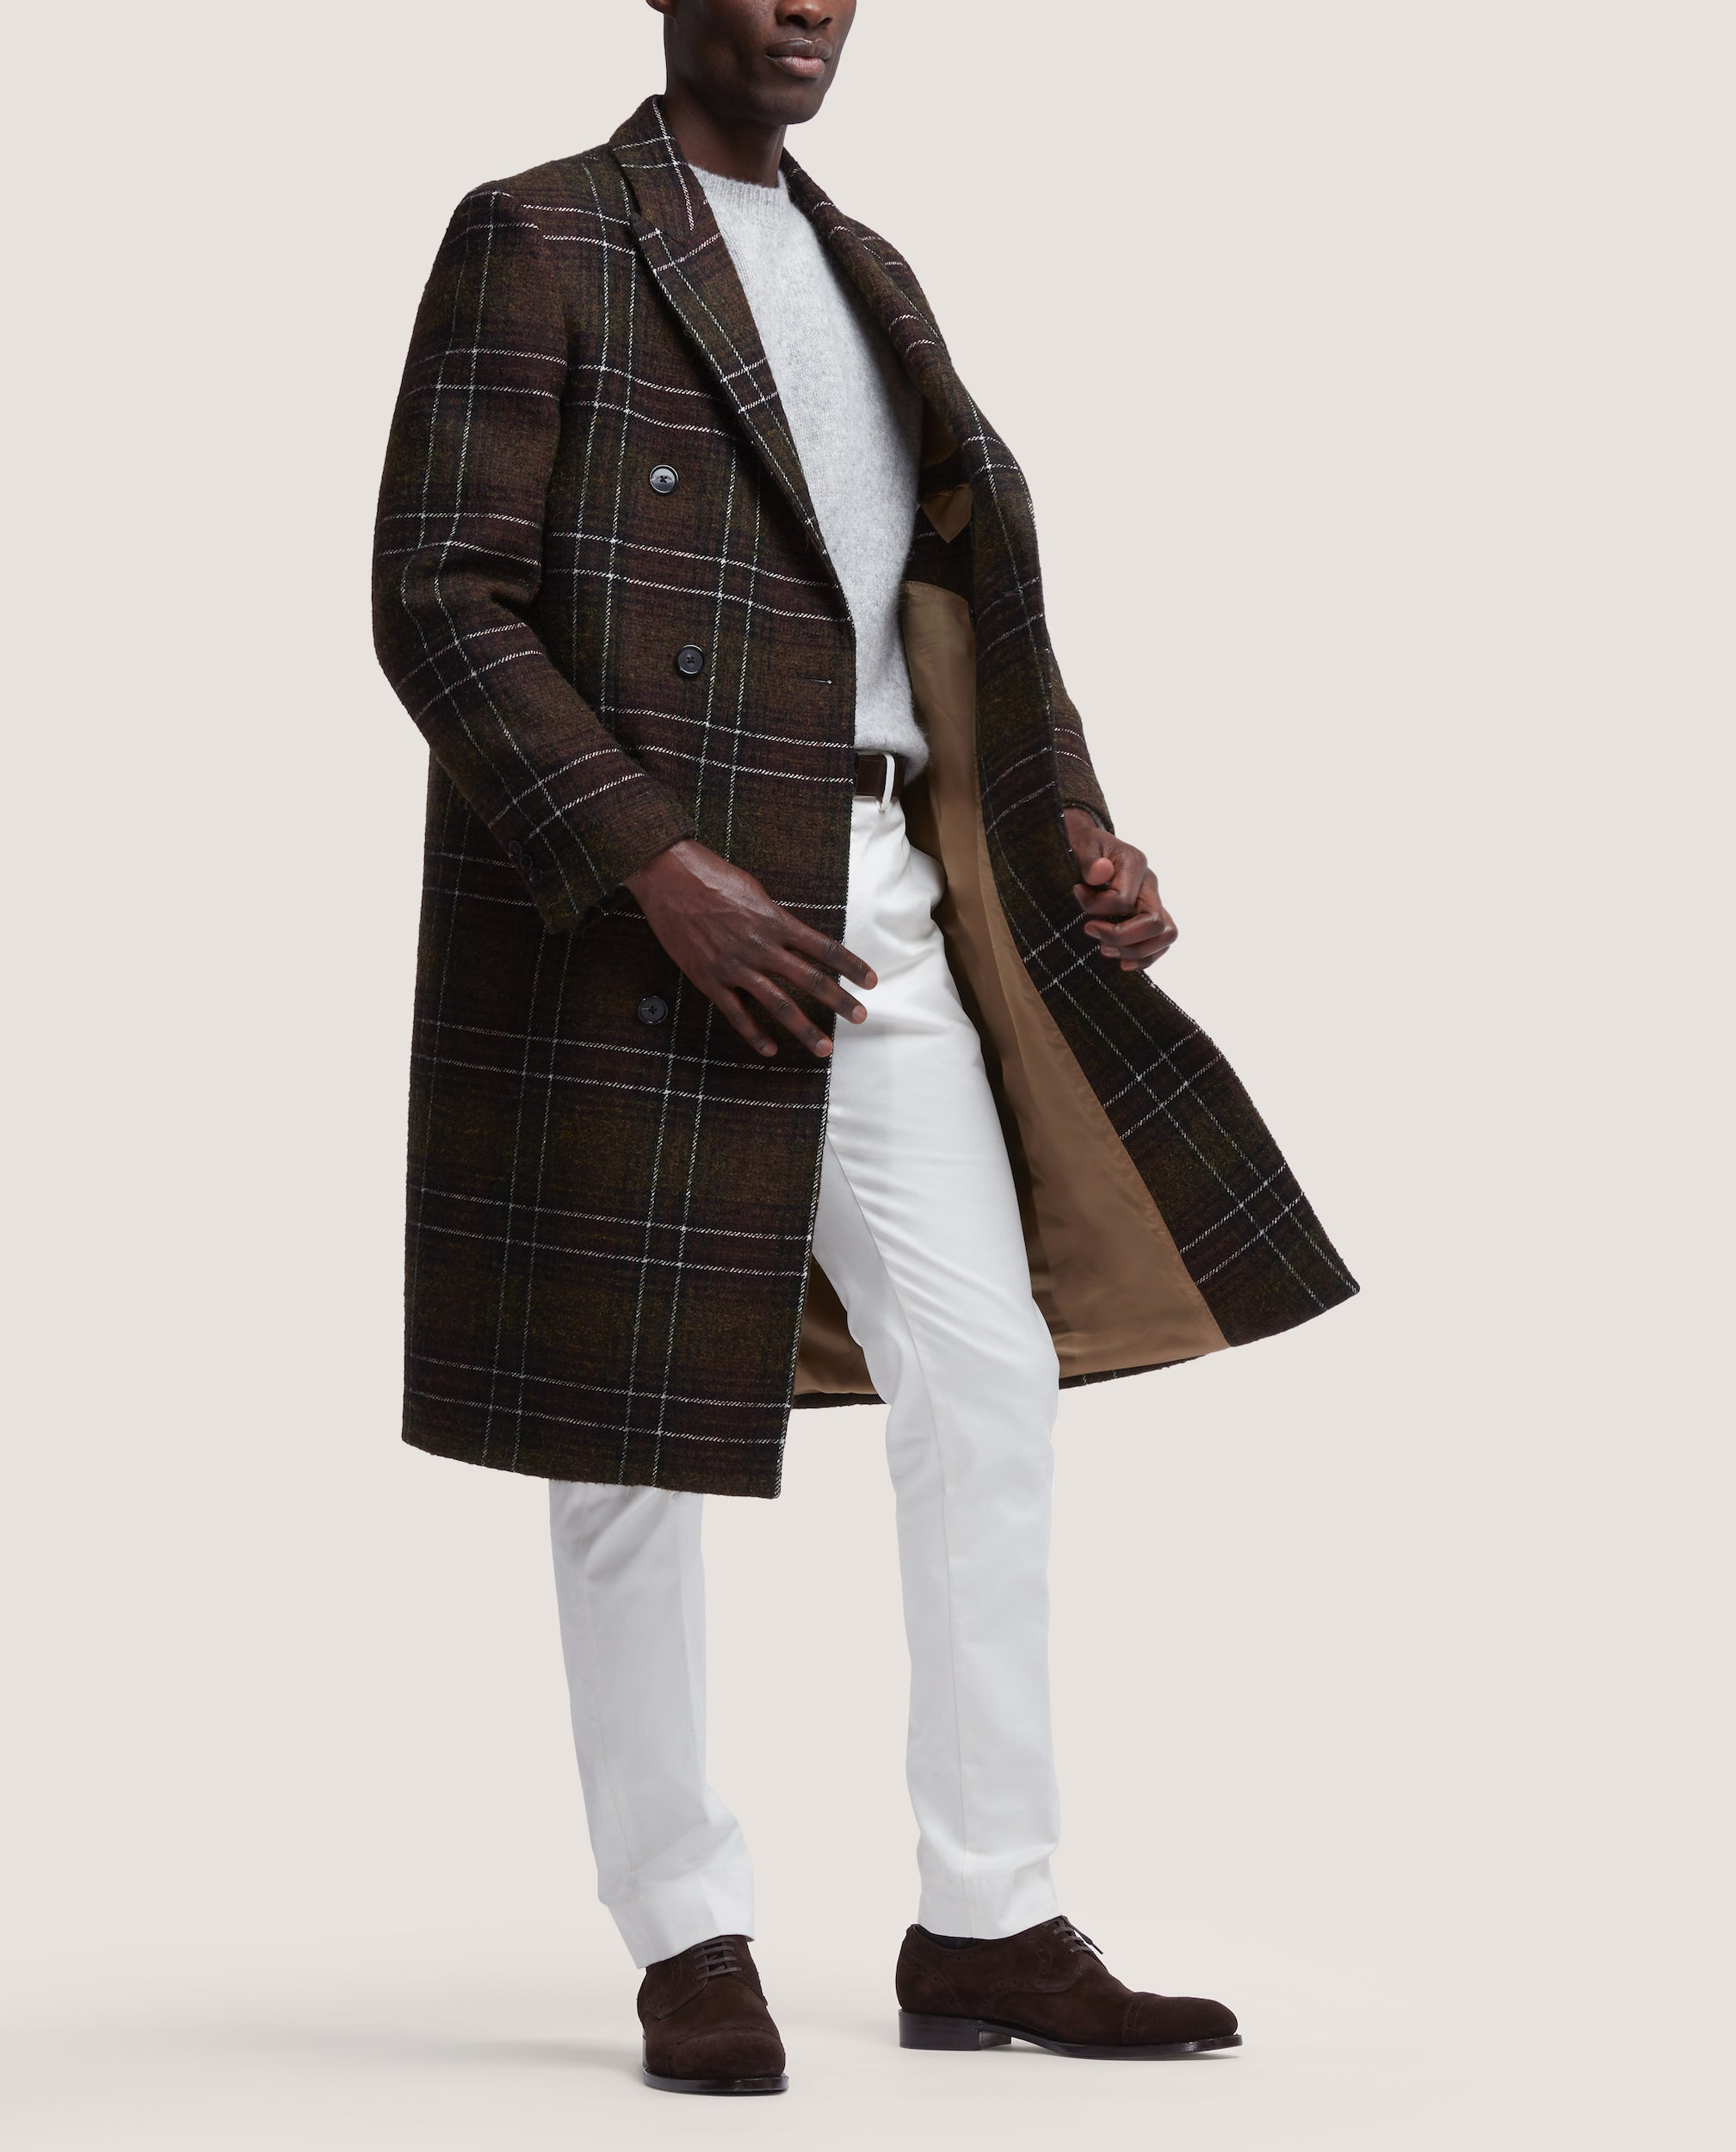 ALAIN Double breasted wool overcoat | Olive Check